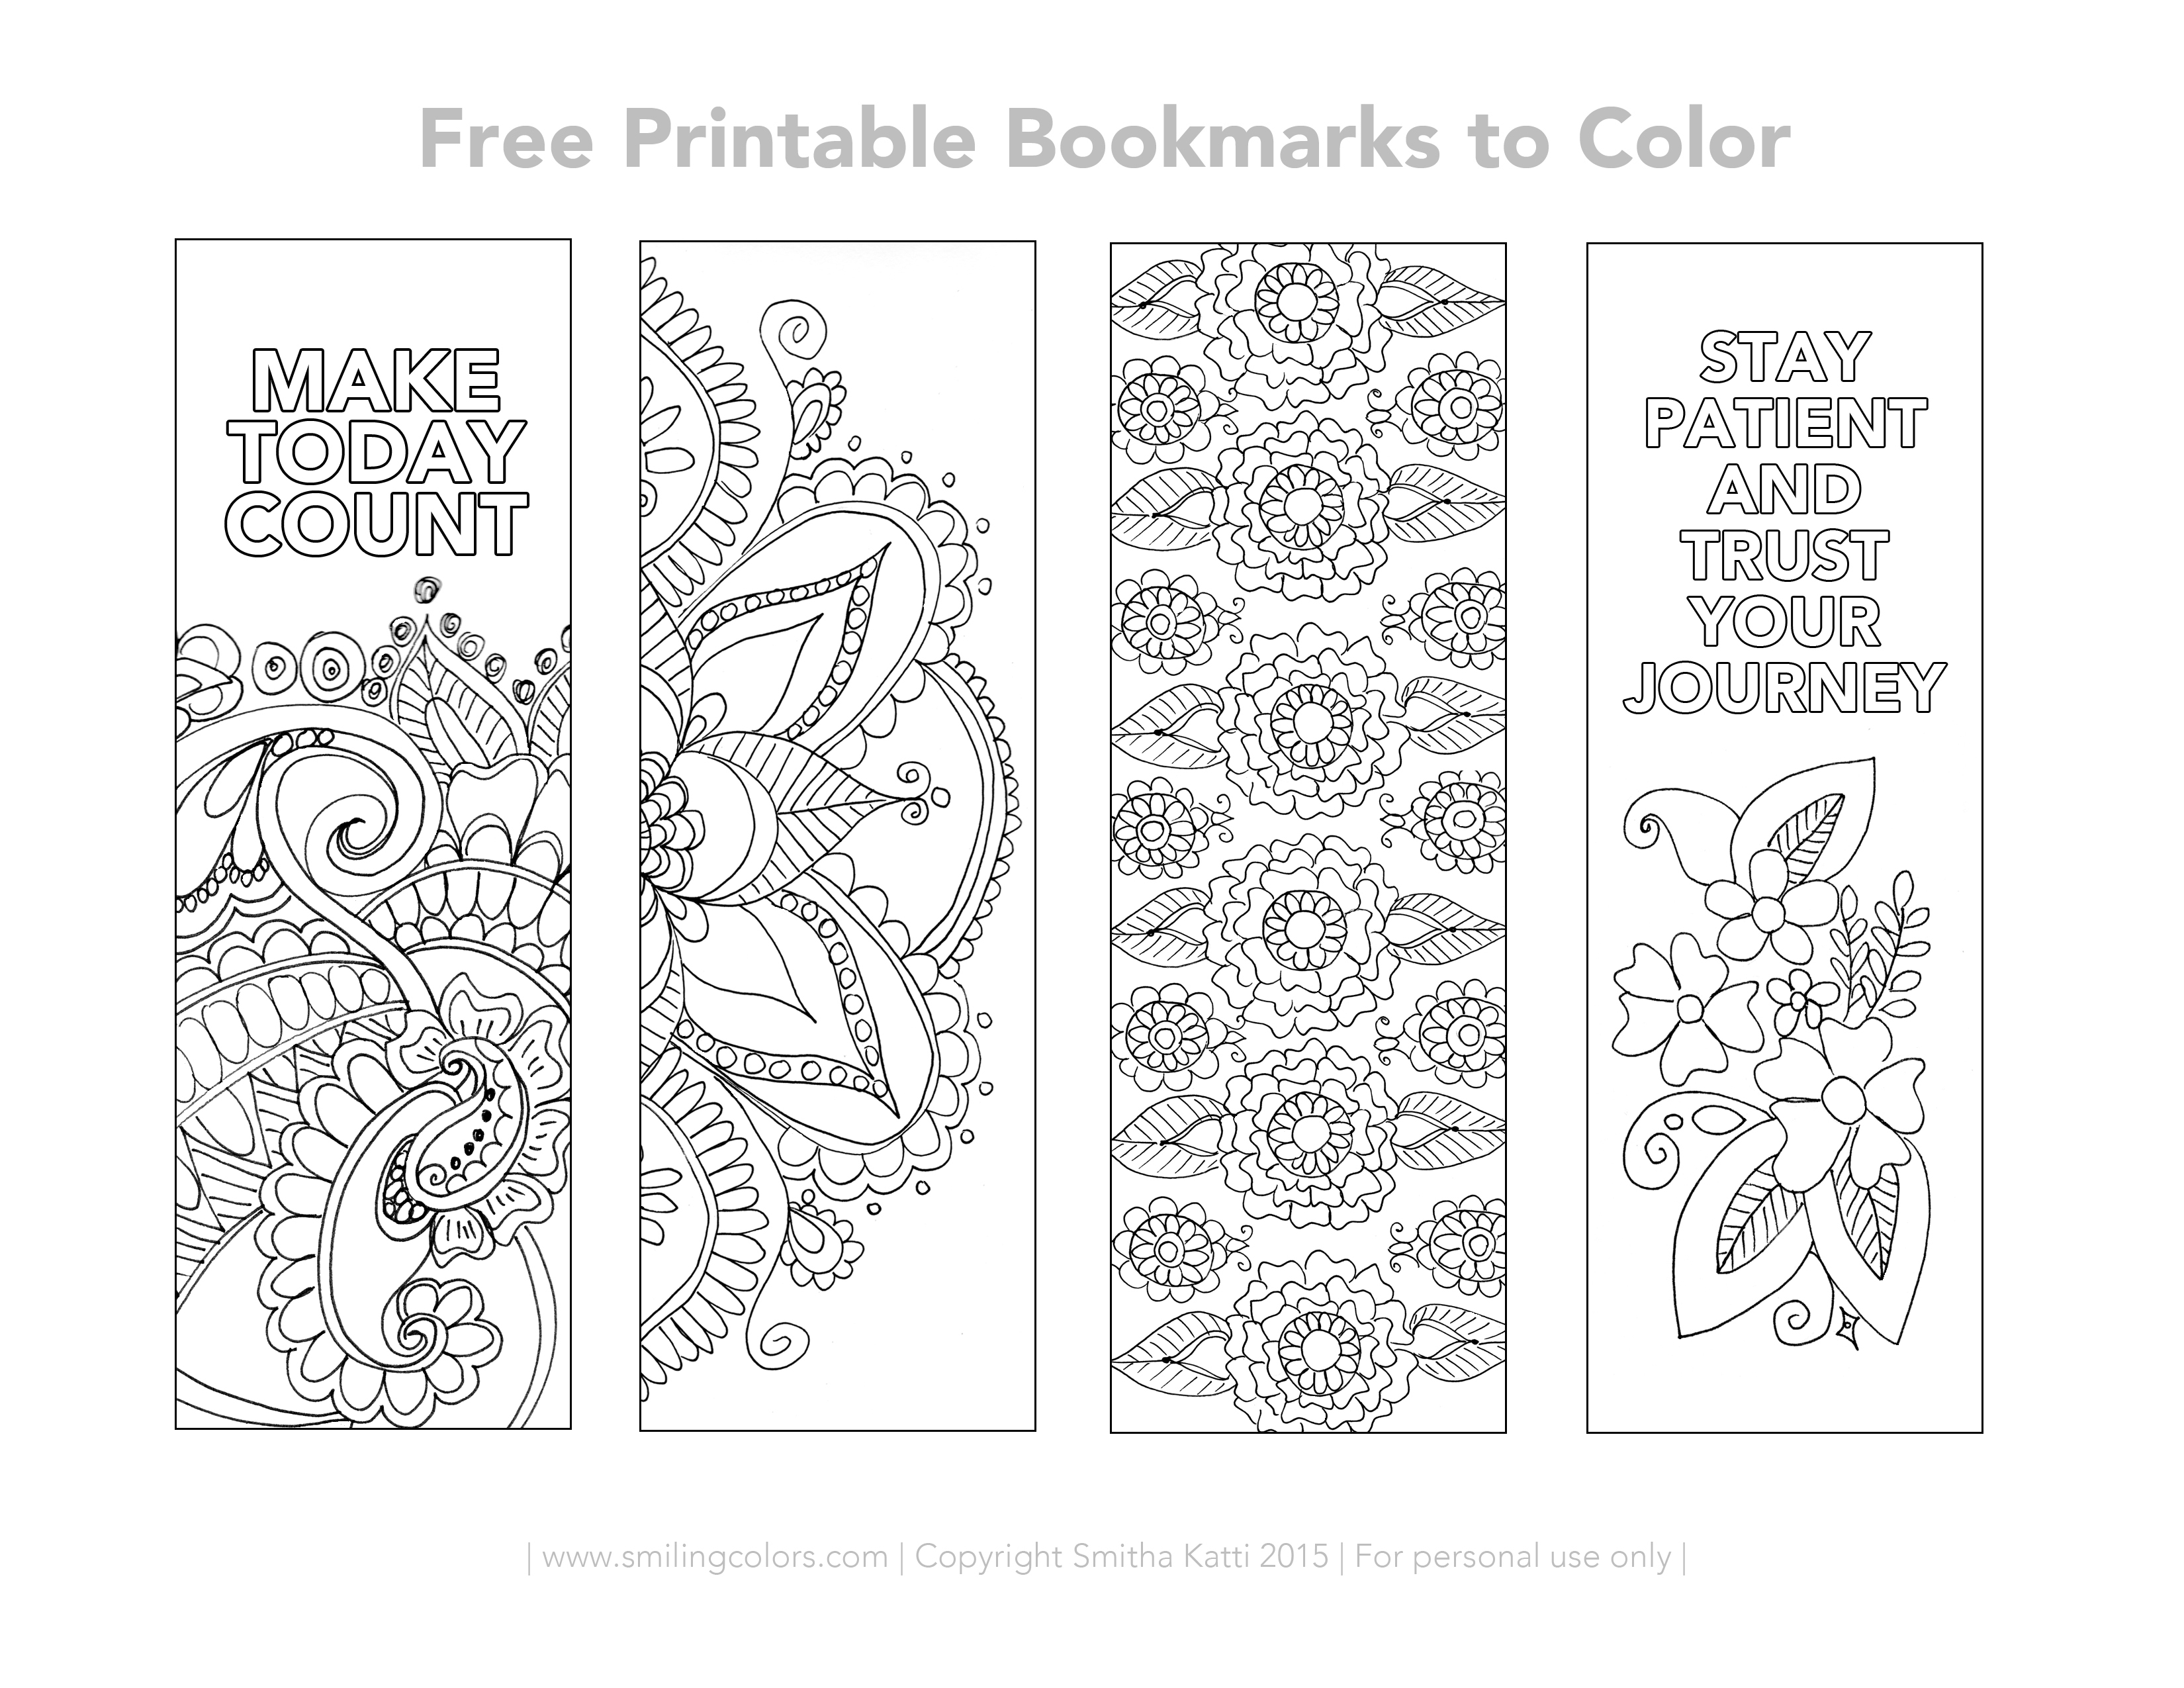 Free Printable Bookmarks To Color - Smitha Katti - Free Printable Bookmarks Templates